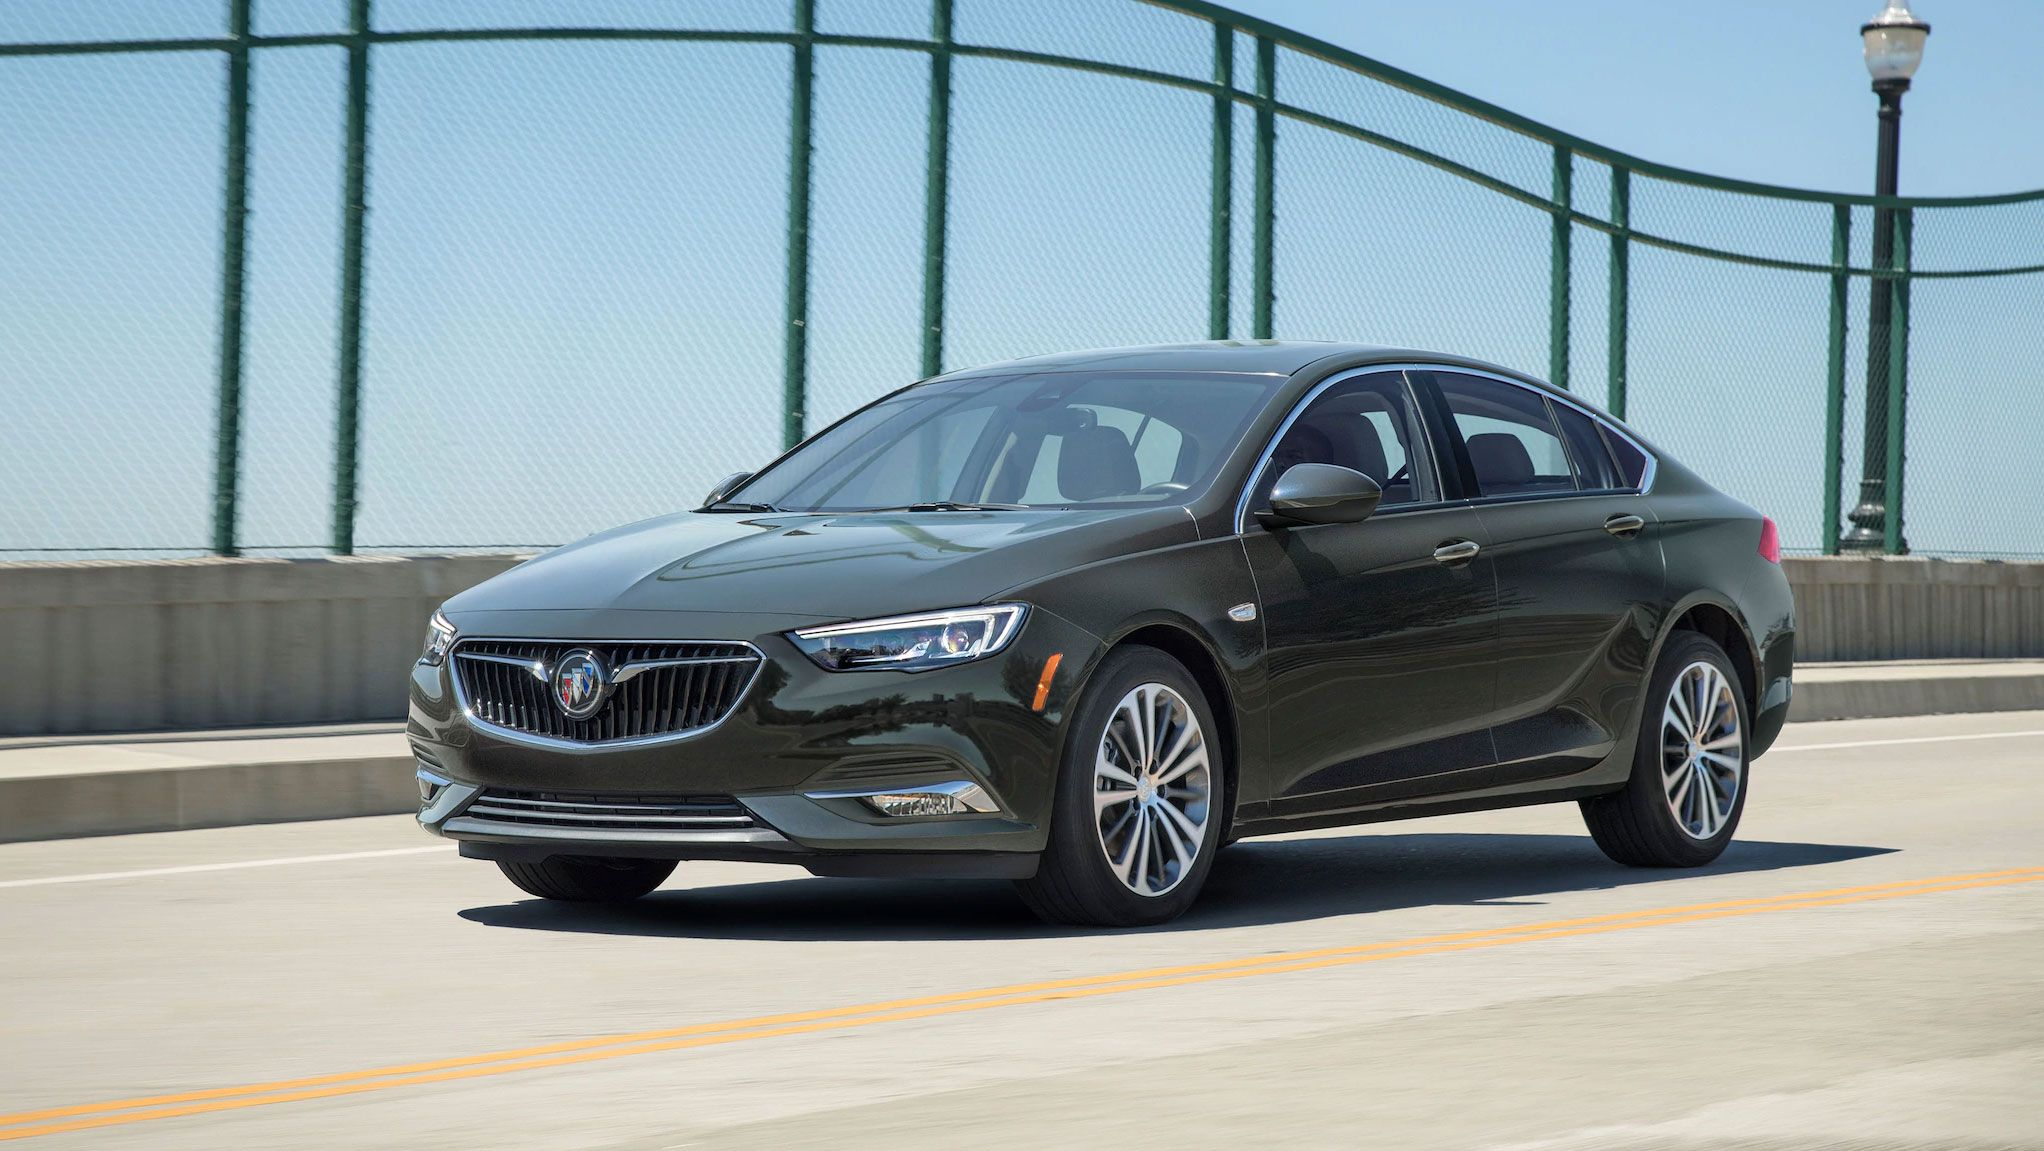 2020 Buick Regal Sportback Review, Pricing, And Specs New 2021 Buick Regal Pictures, Price, Reviews